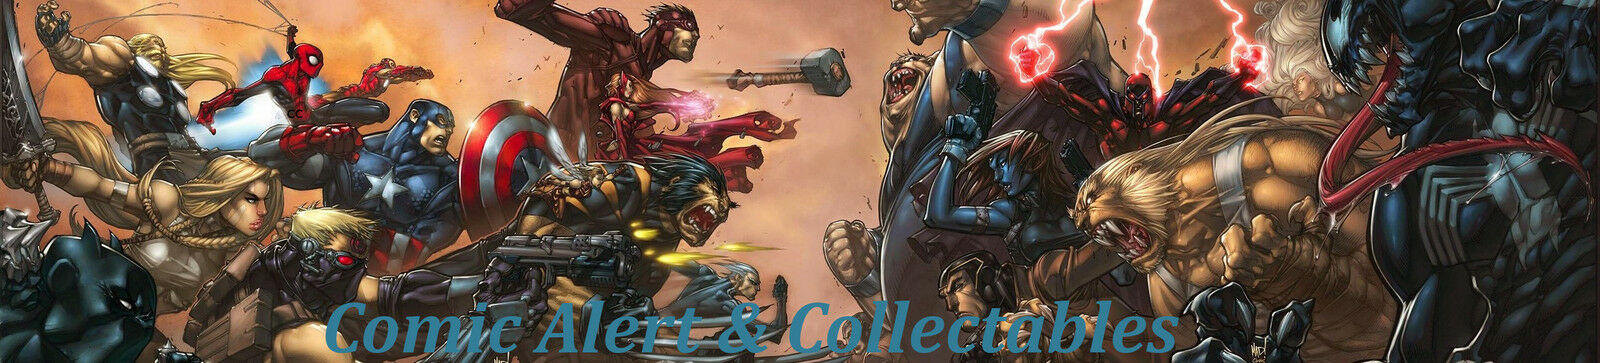 Comic Alert and Collectables